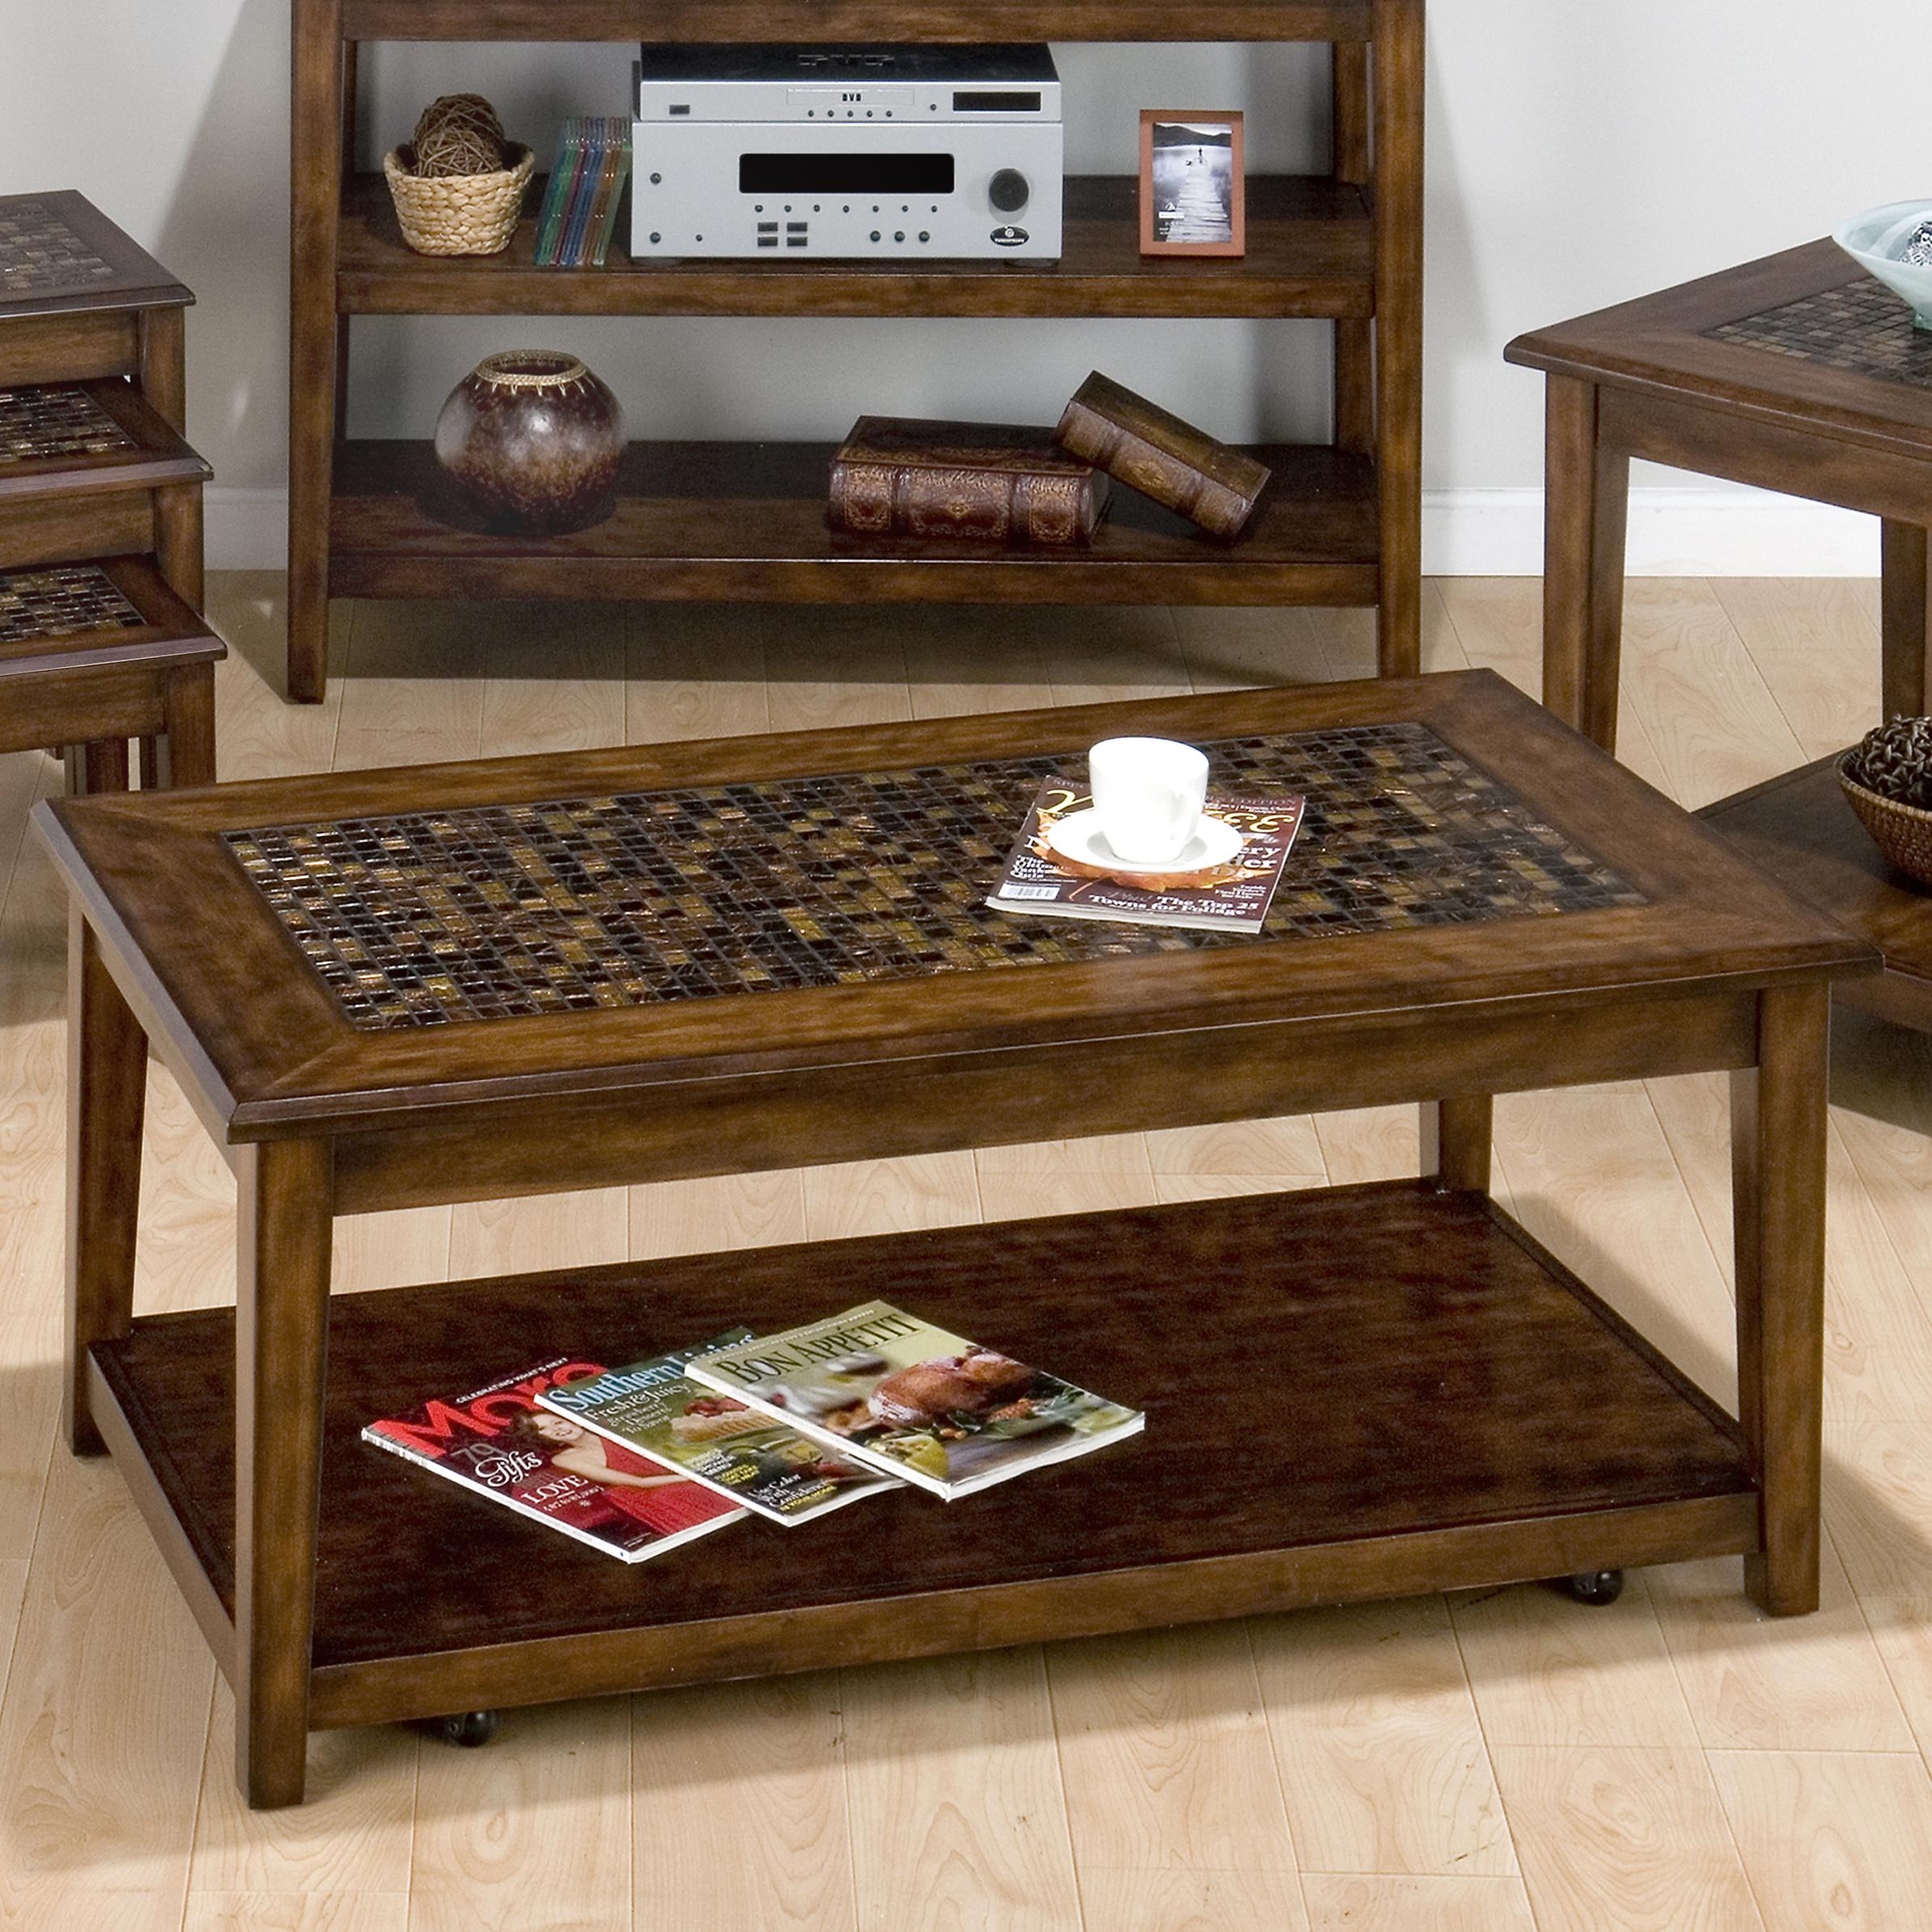 Slate Coffee Table With Drawers: Belfort Essentials Baroque Brown Mosaic Tile Inlay